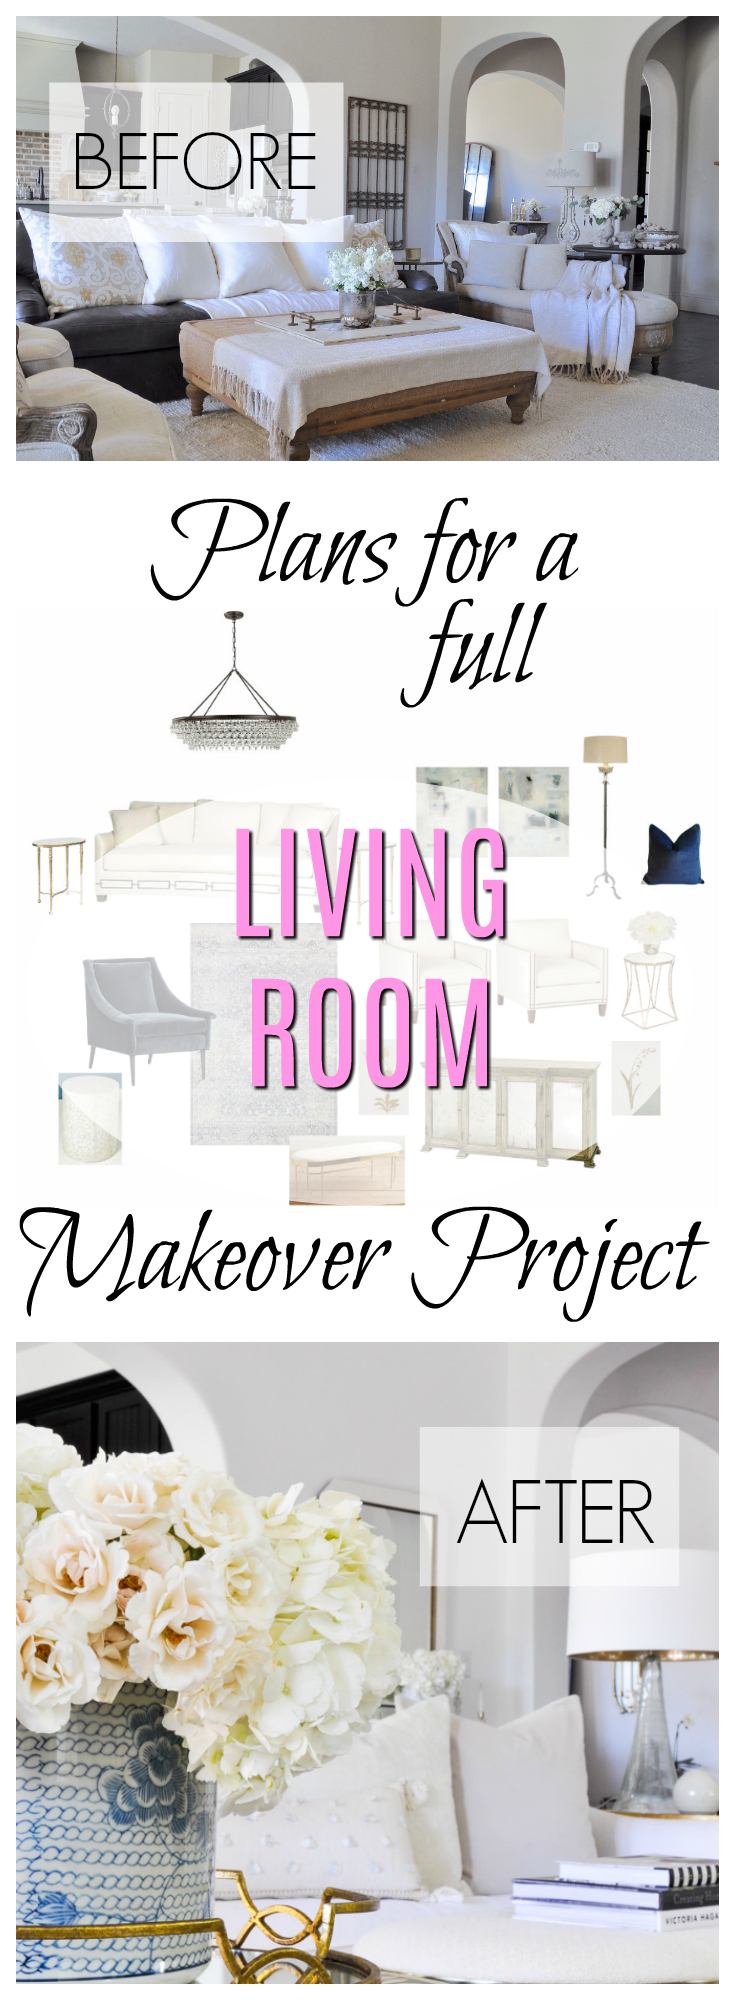 living room makeover project